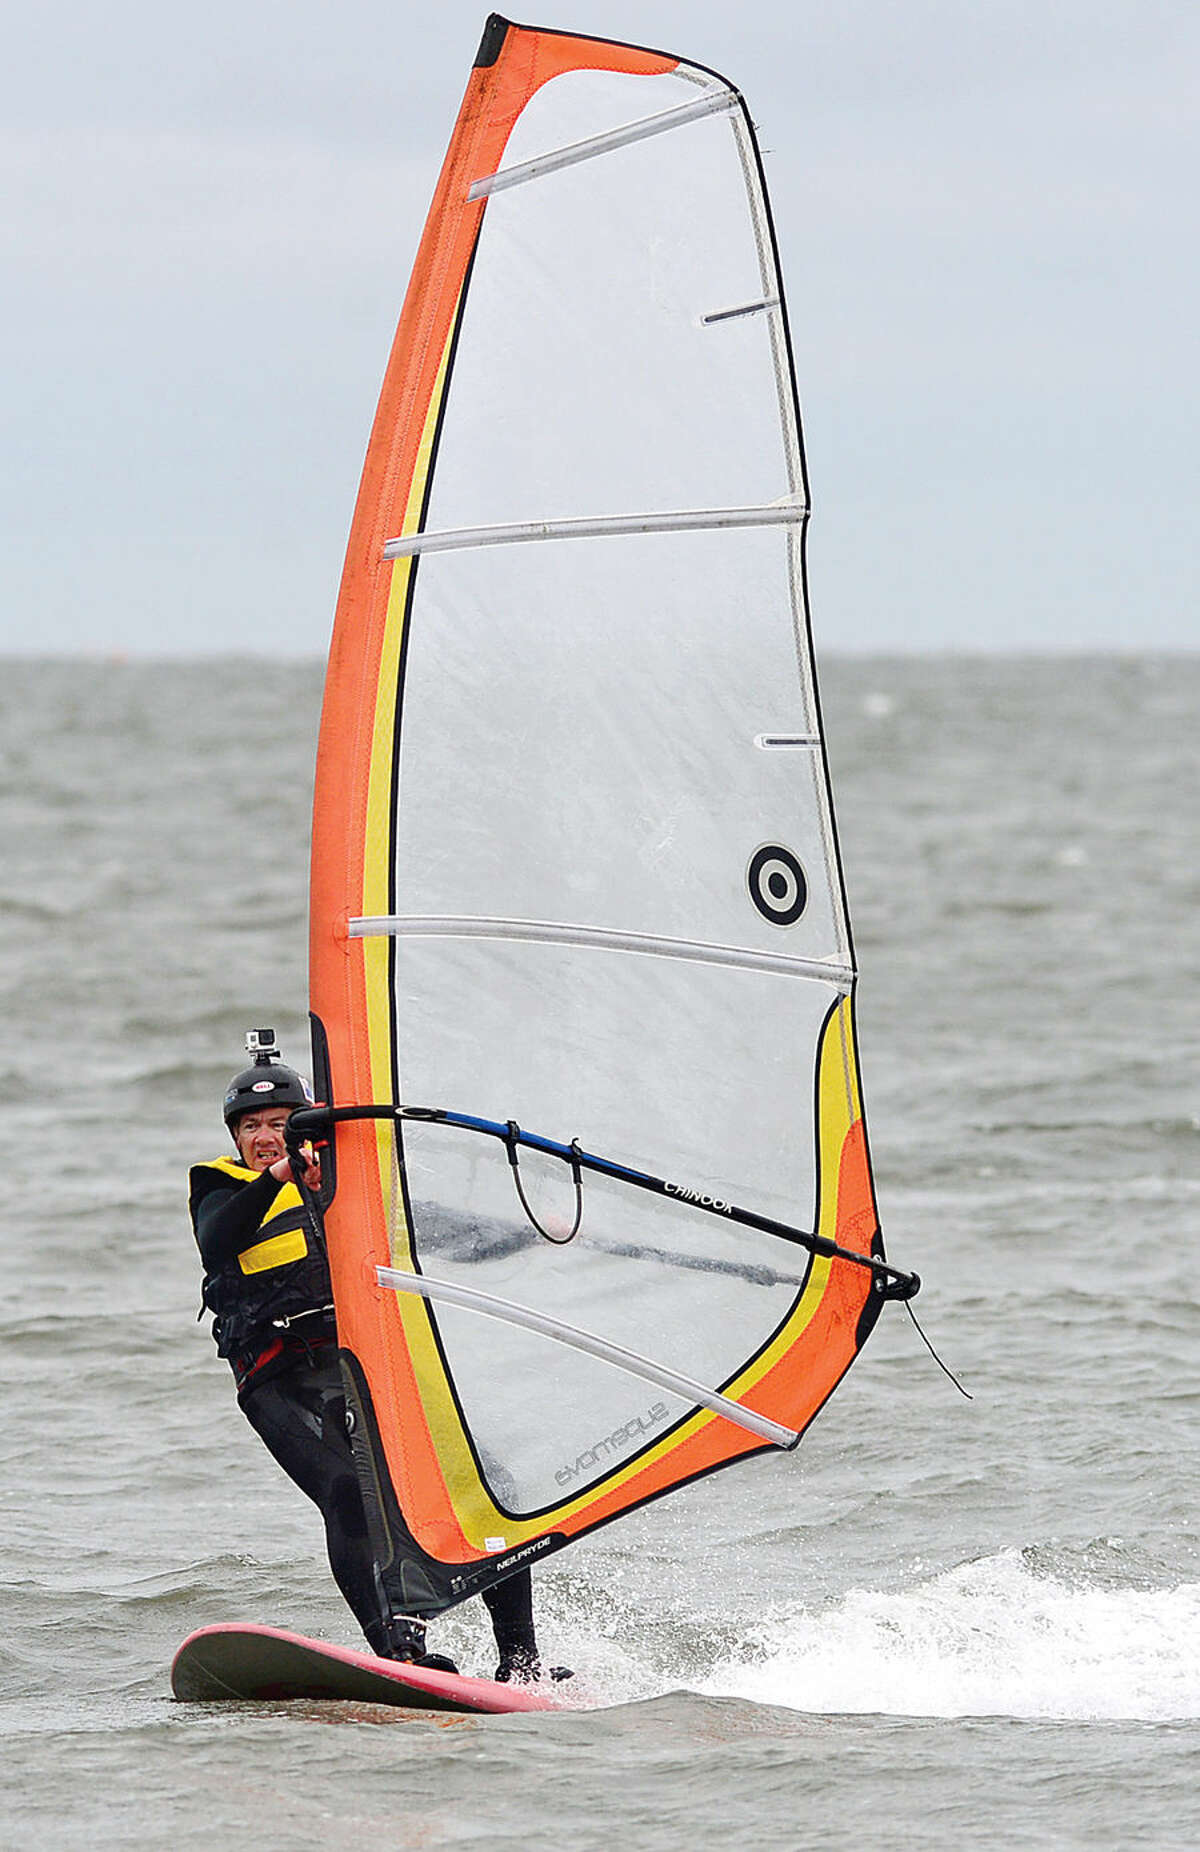 Hour photo / Erik Trautmann Board enthusiasts including Ross Colbert take advantage of the windy conditions at Calf Pasture Beach Saturday to windsurf and kiteboard.